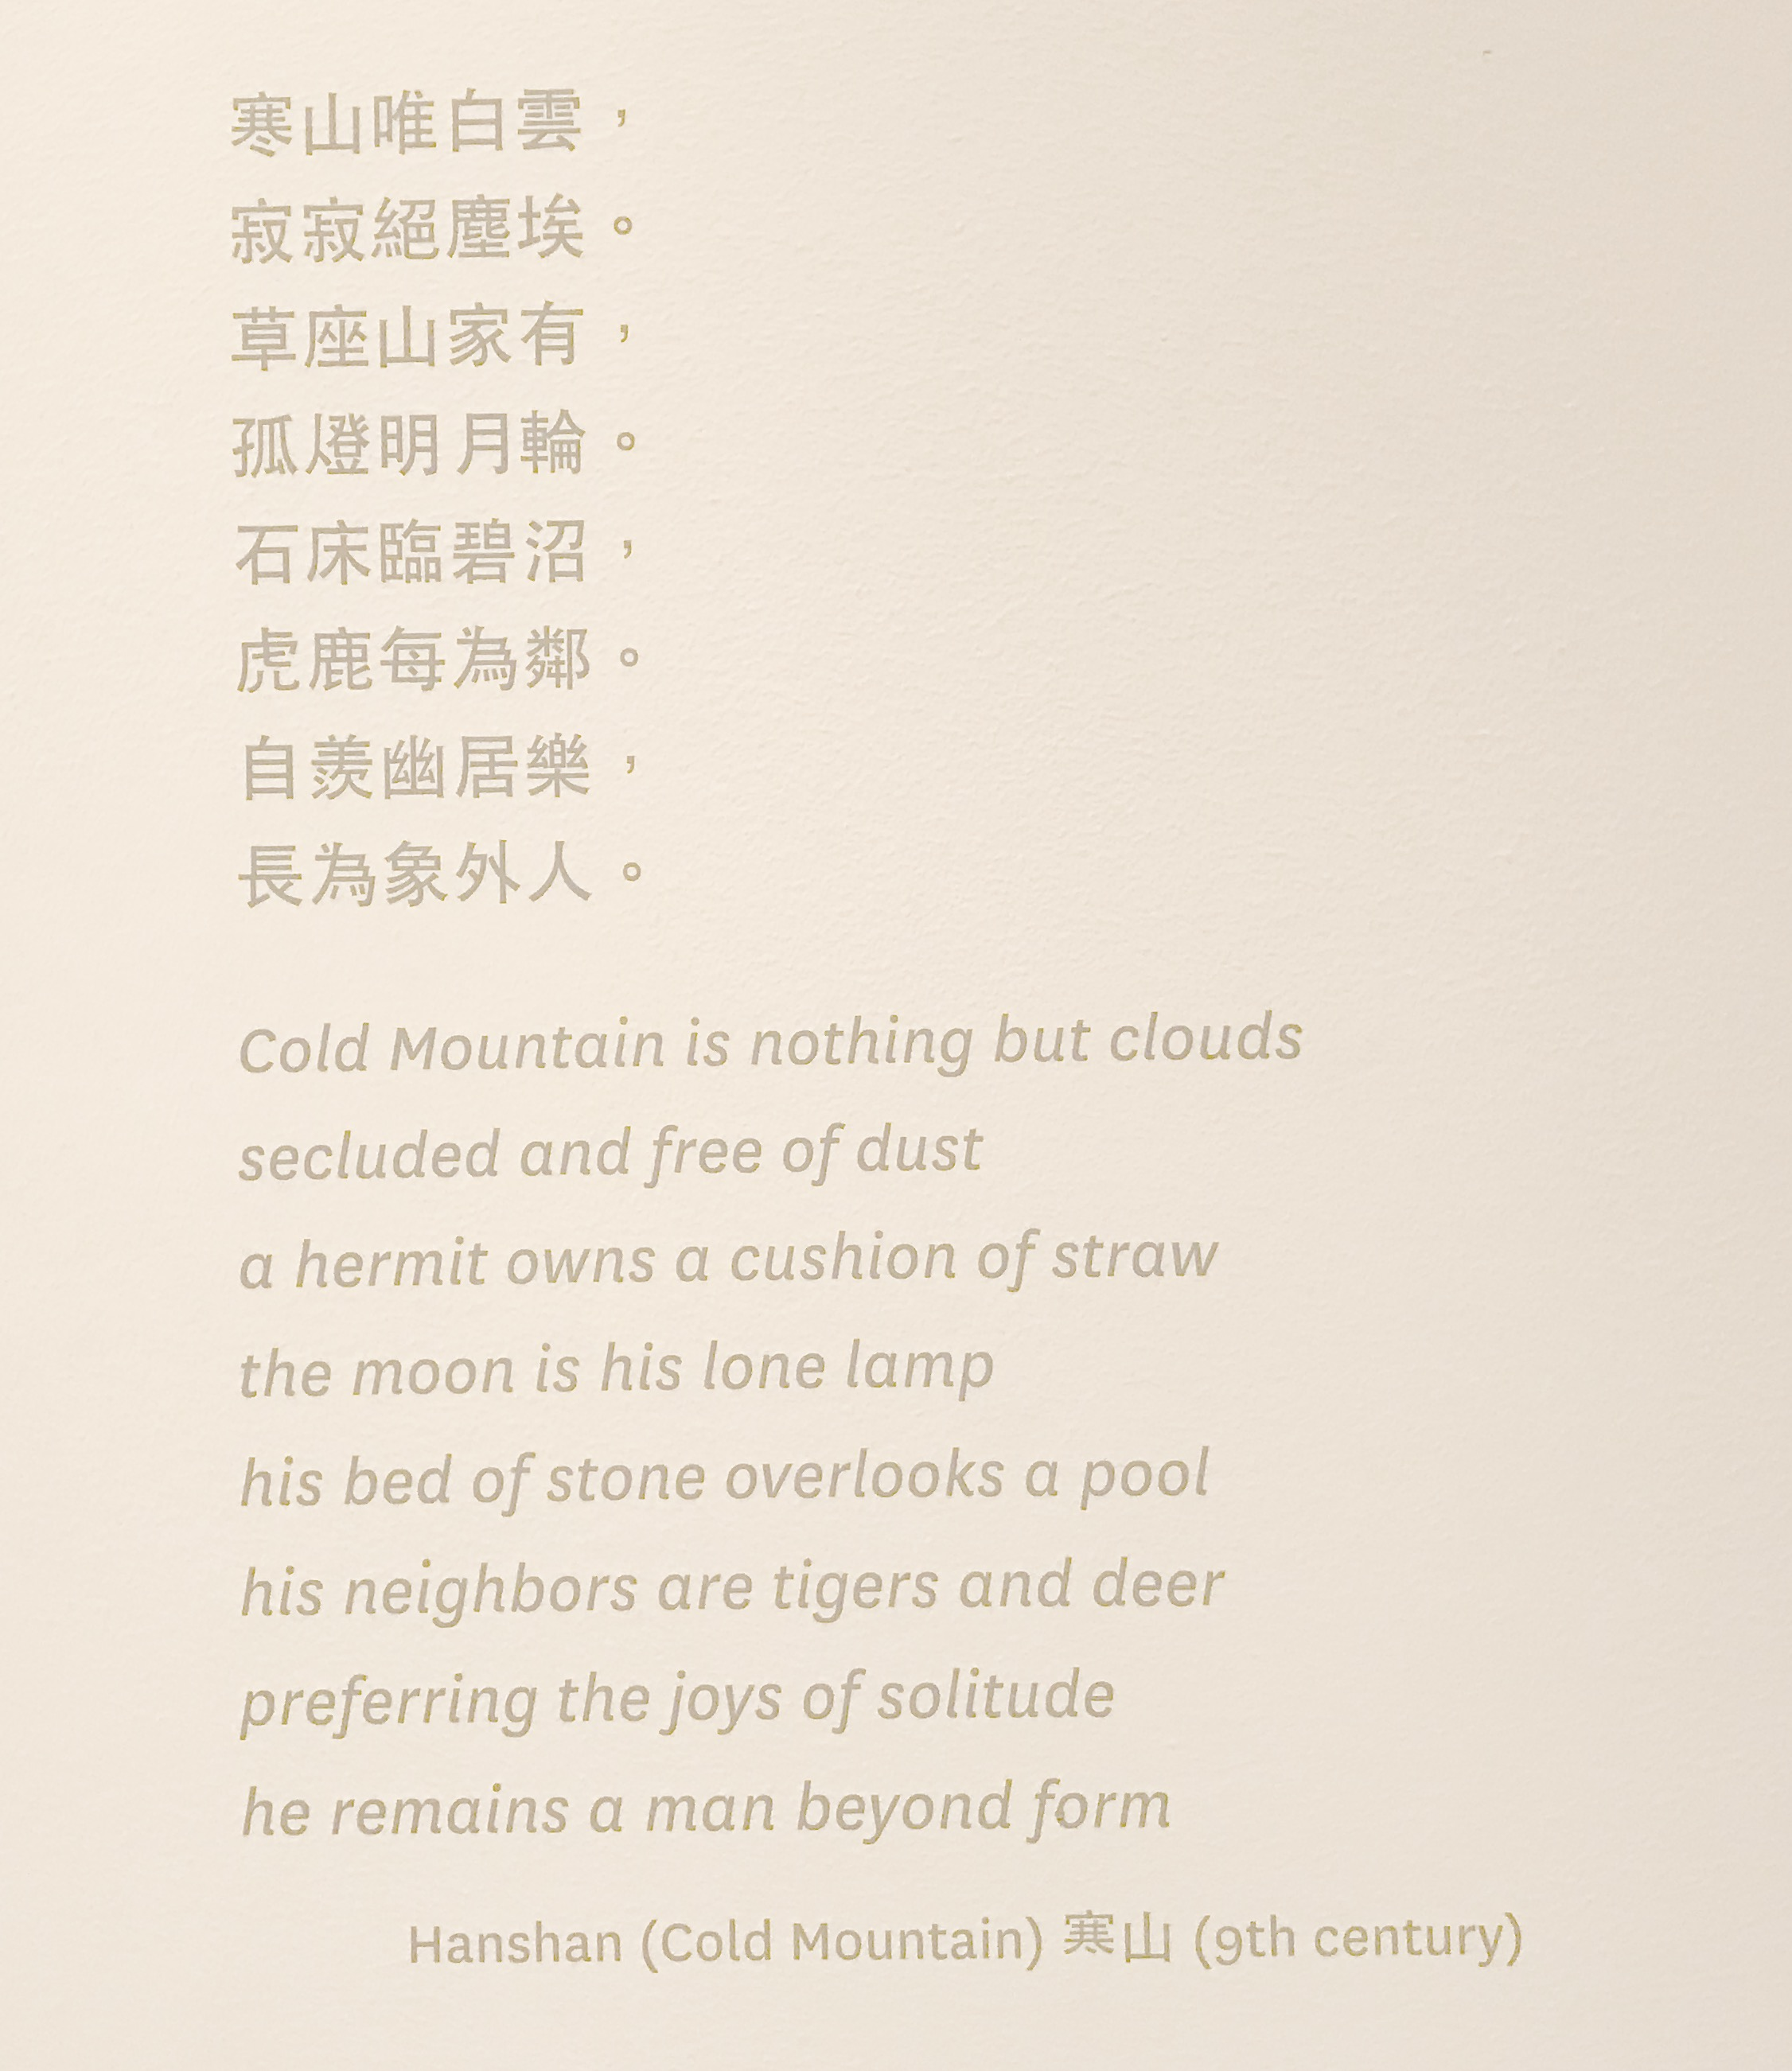 Hanshan (Cold Mountain) 9th Century